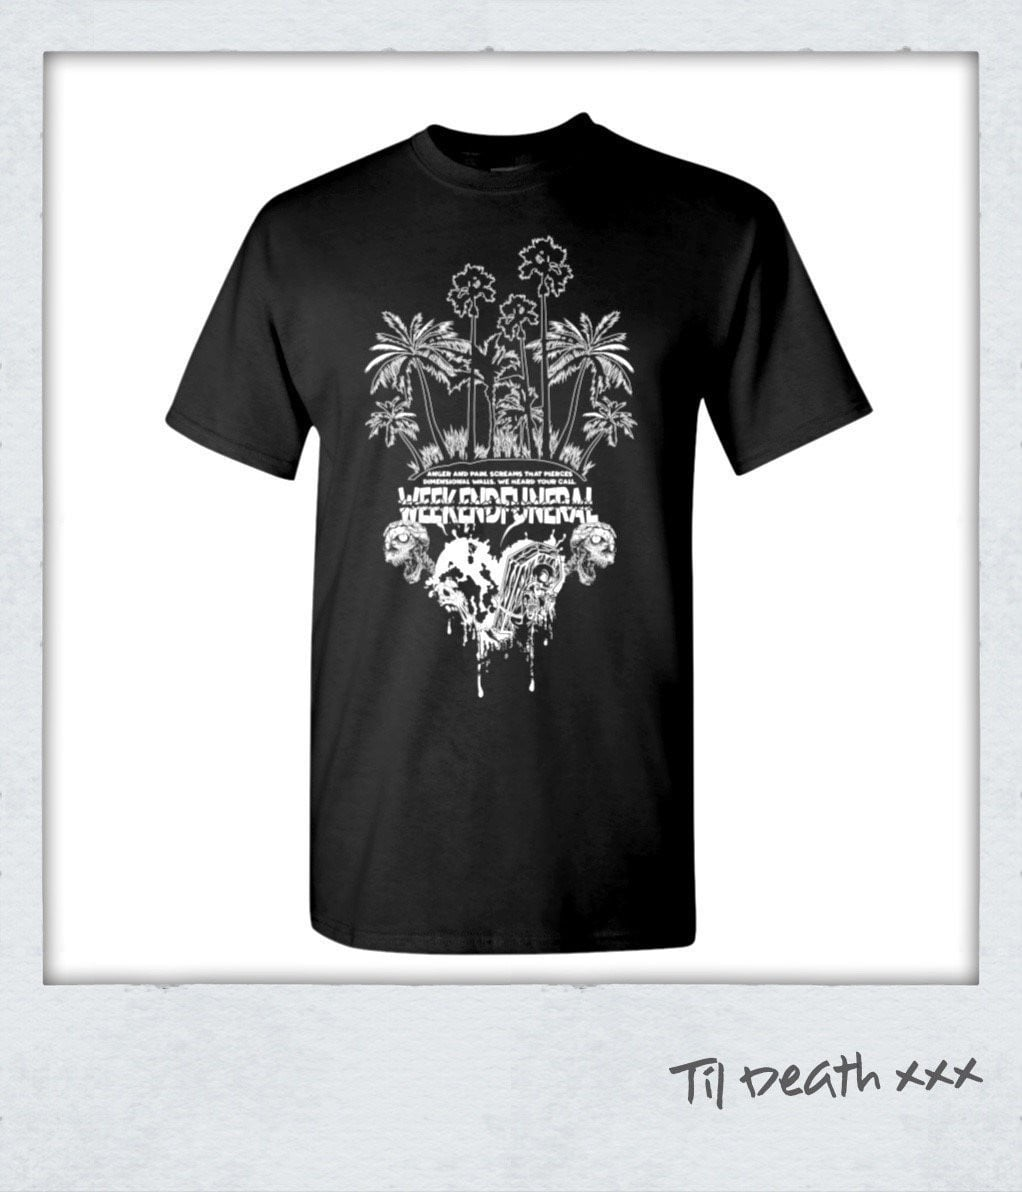 """ 'Til Death "" - by WeekendFuneral - Streetwear to Die For"